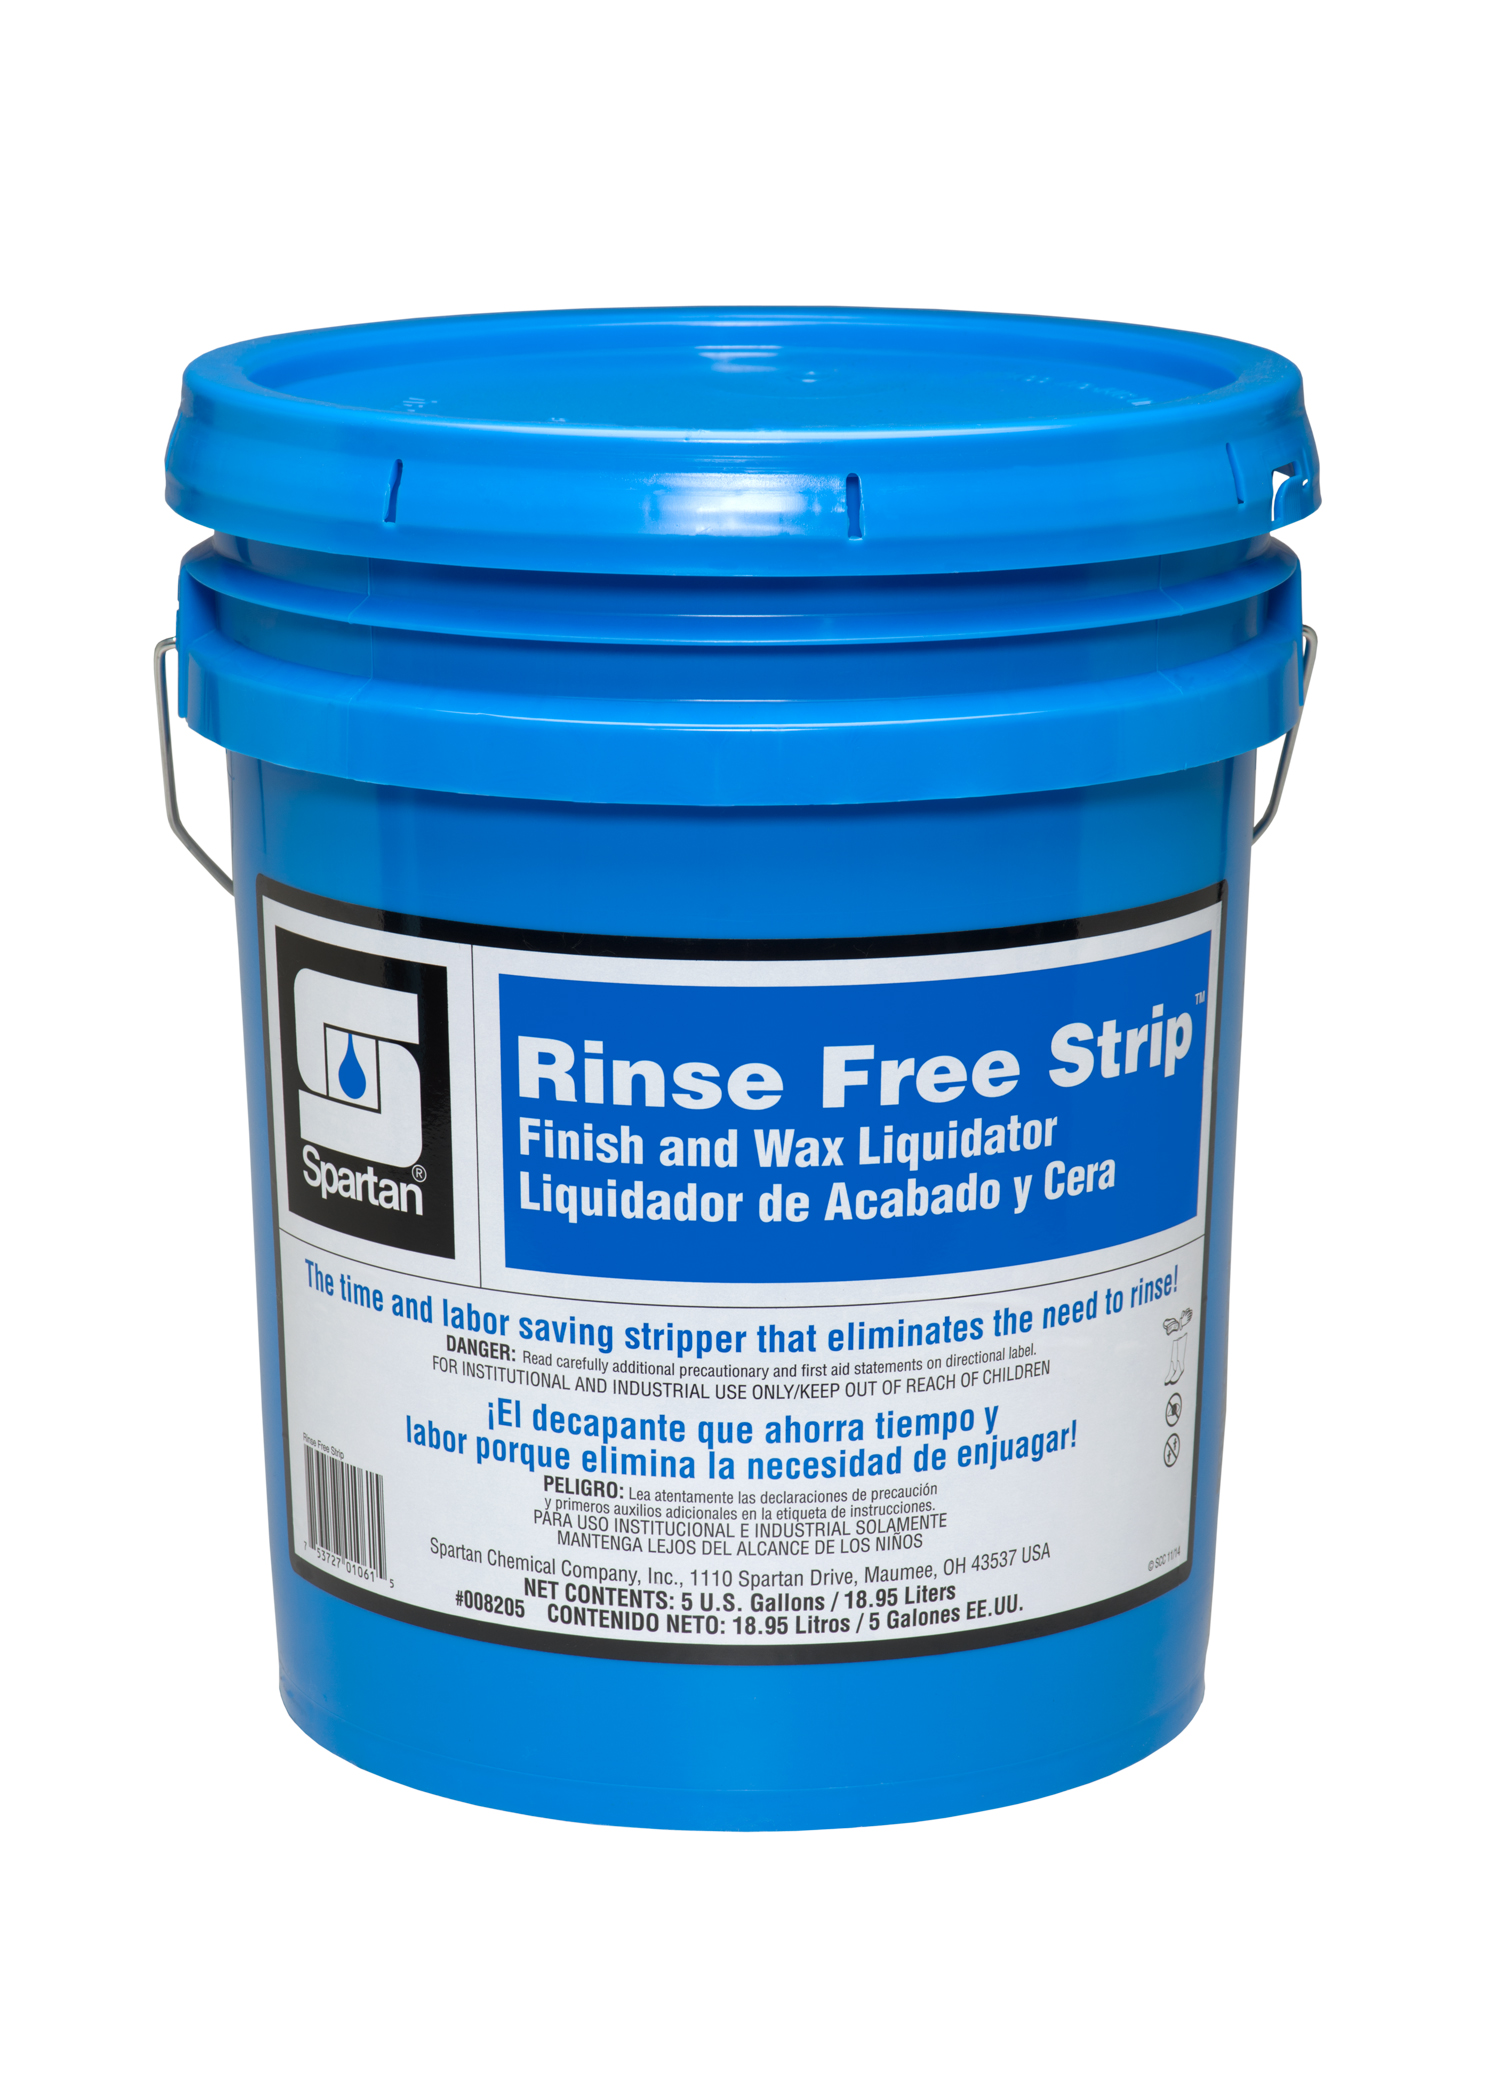 PicturesLogo/RINSE FREE STRIPPER.jpg